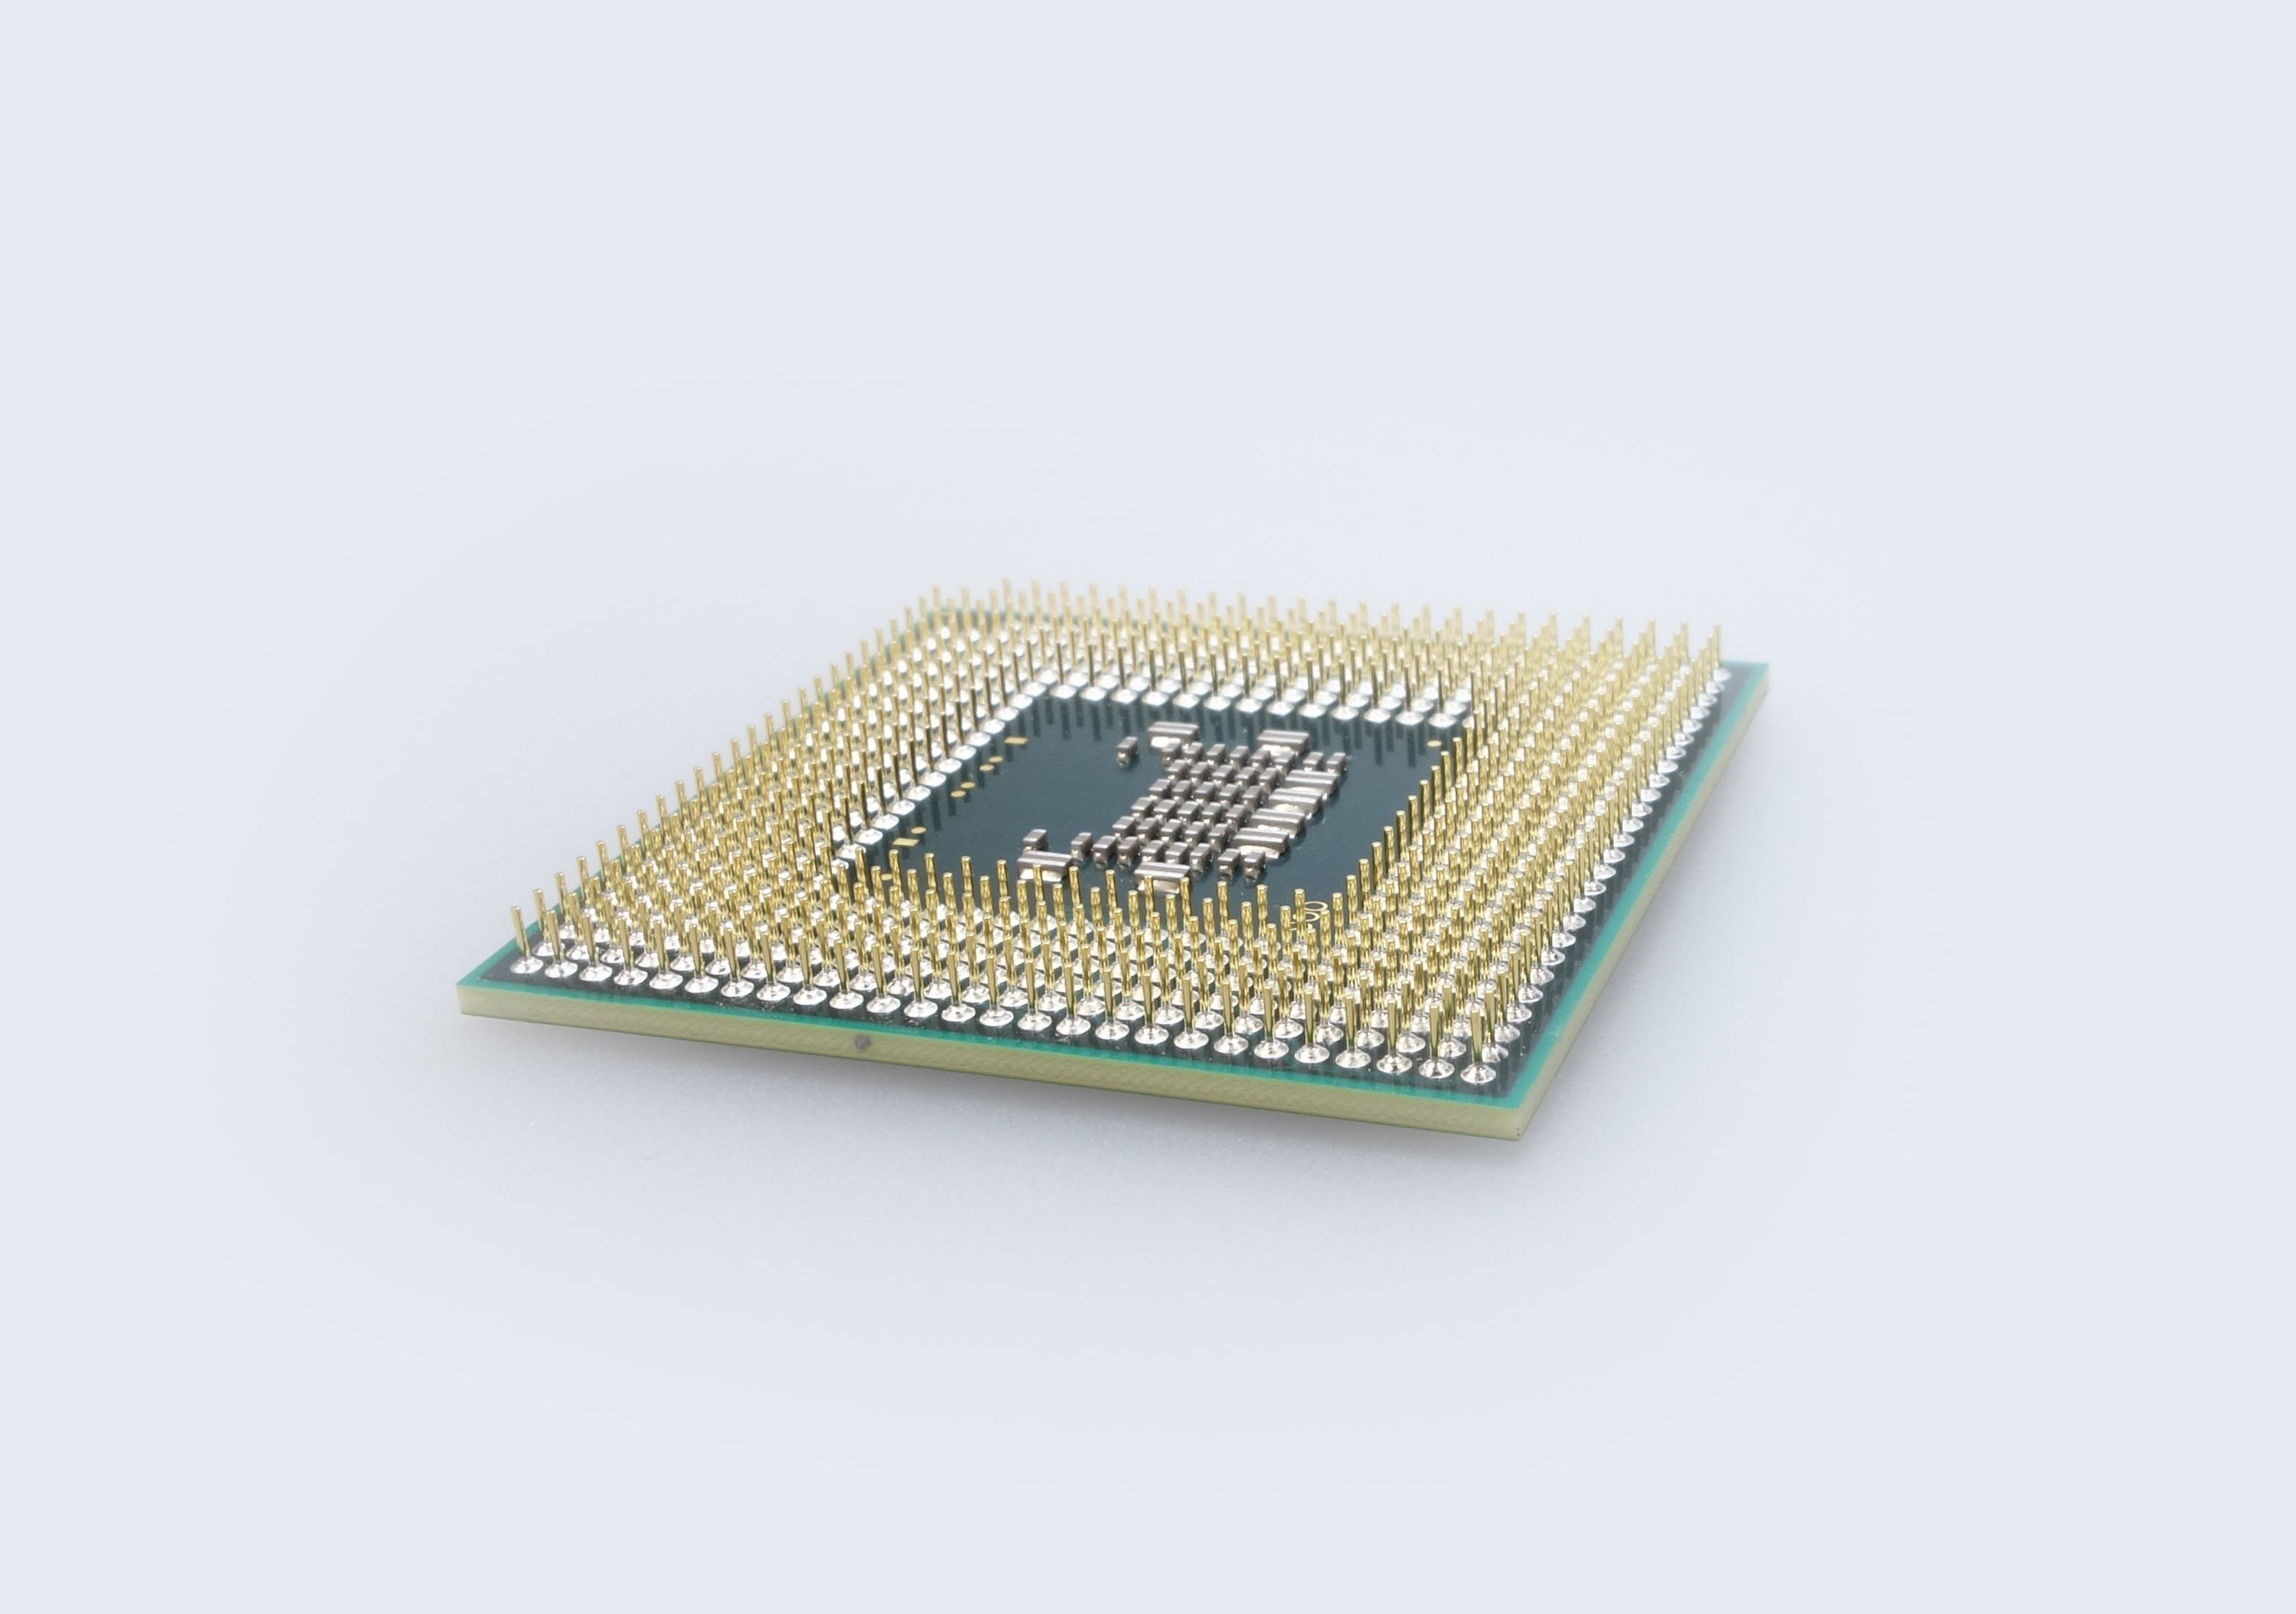 Gratis stockfoto met centrale verwerkingseenheid, chip, computerchip, cpu